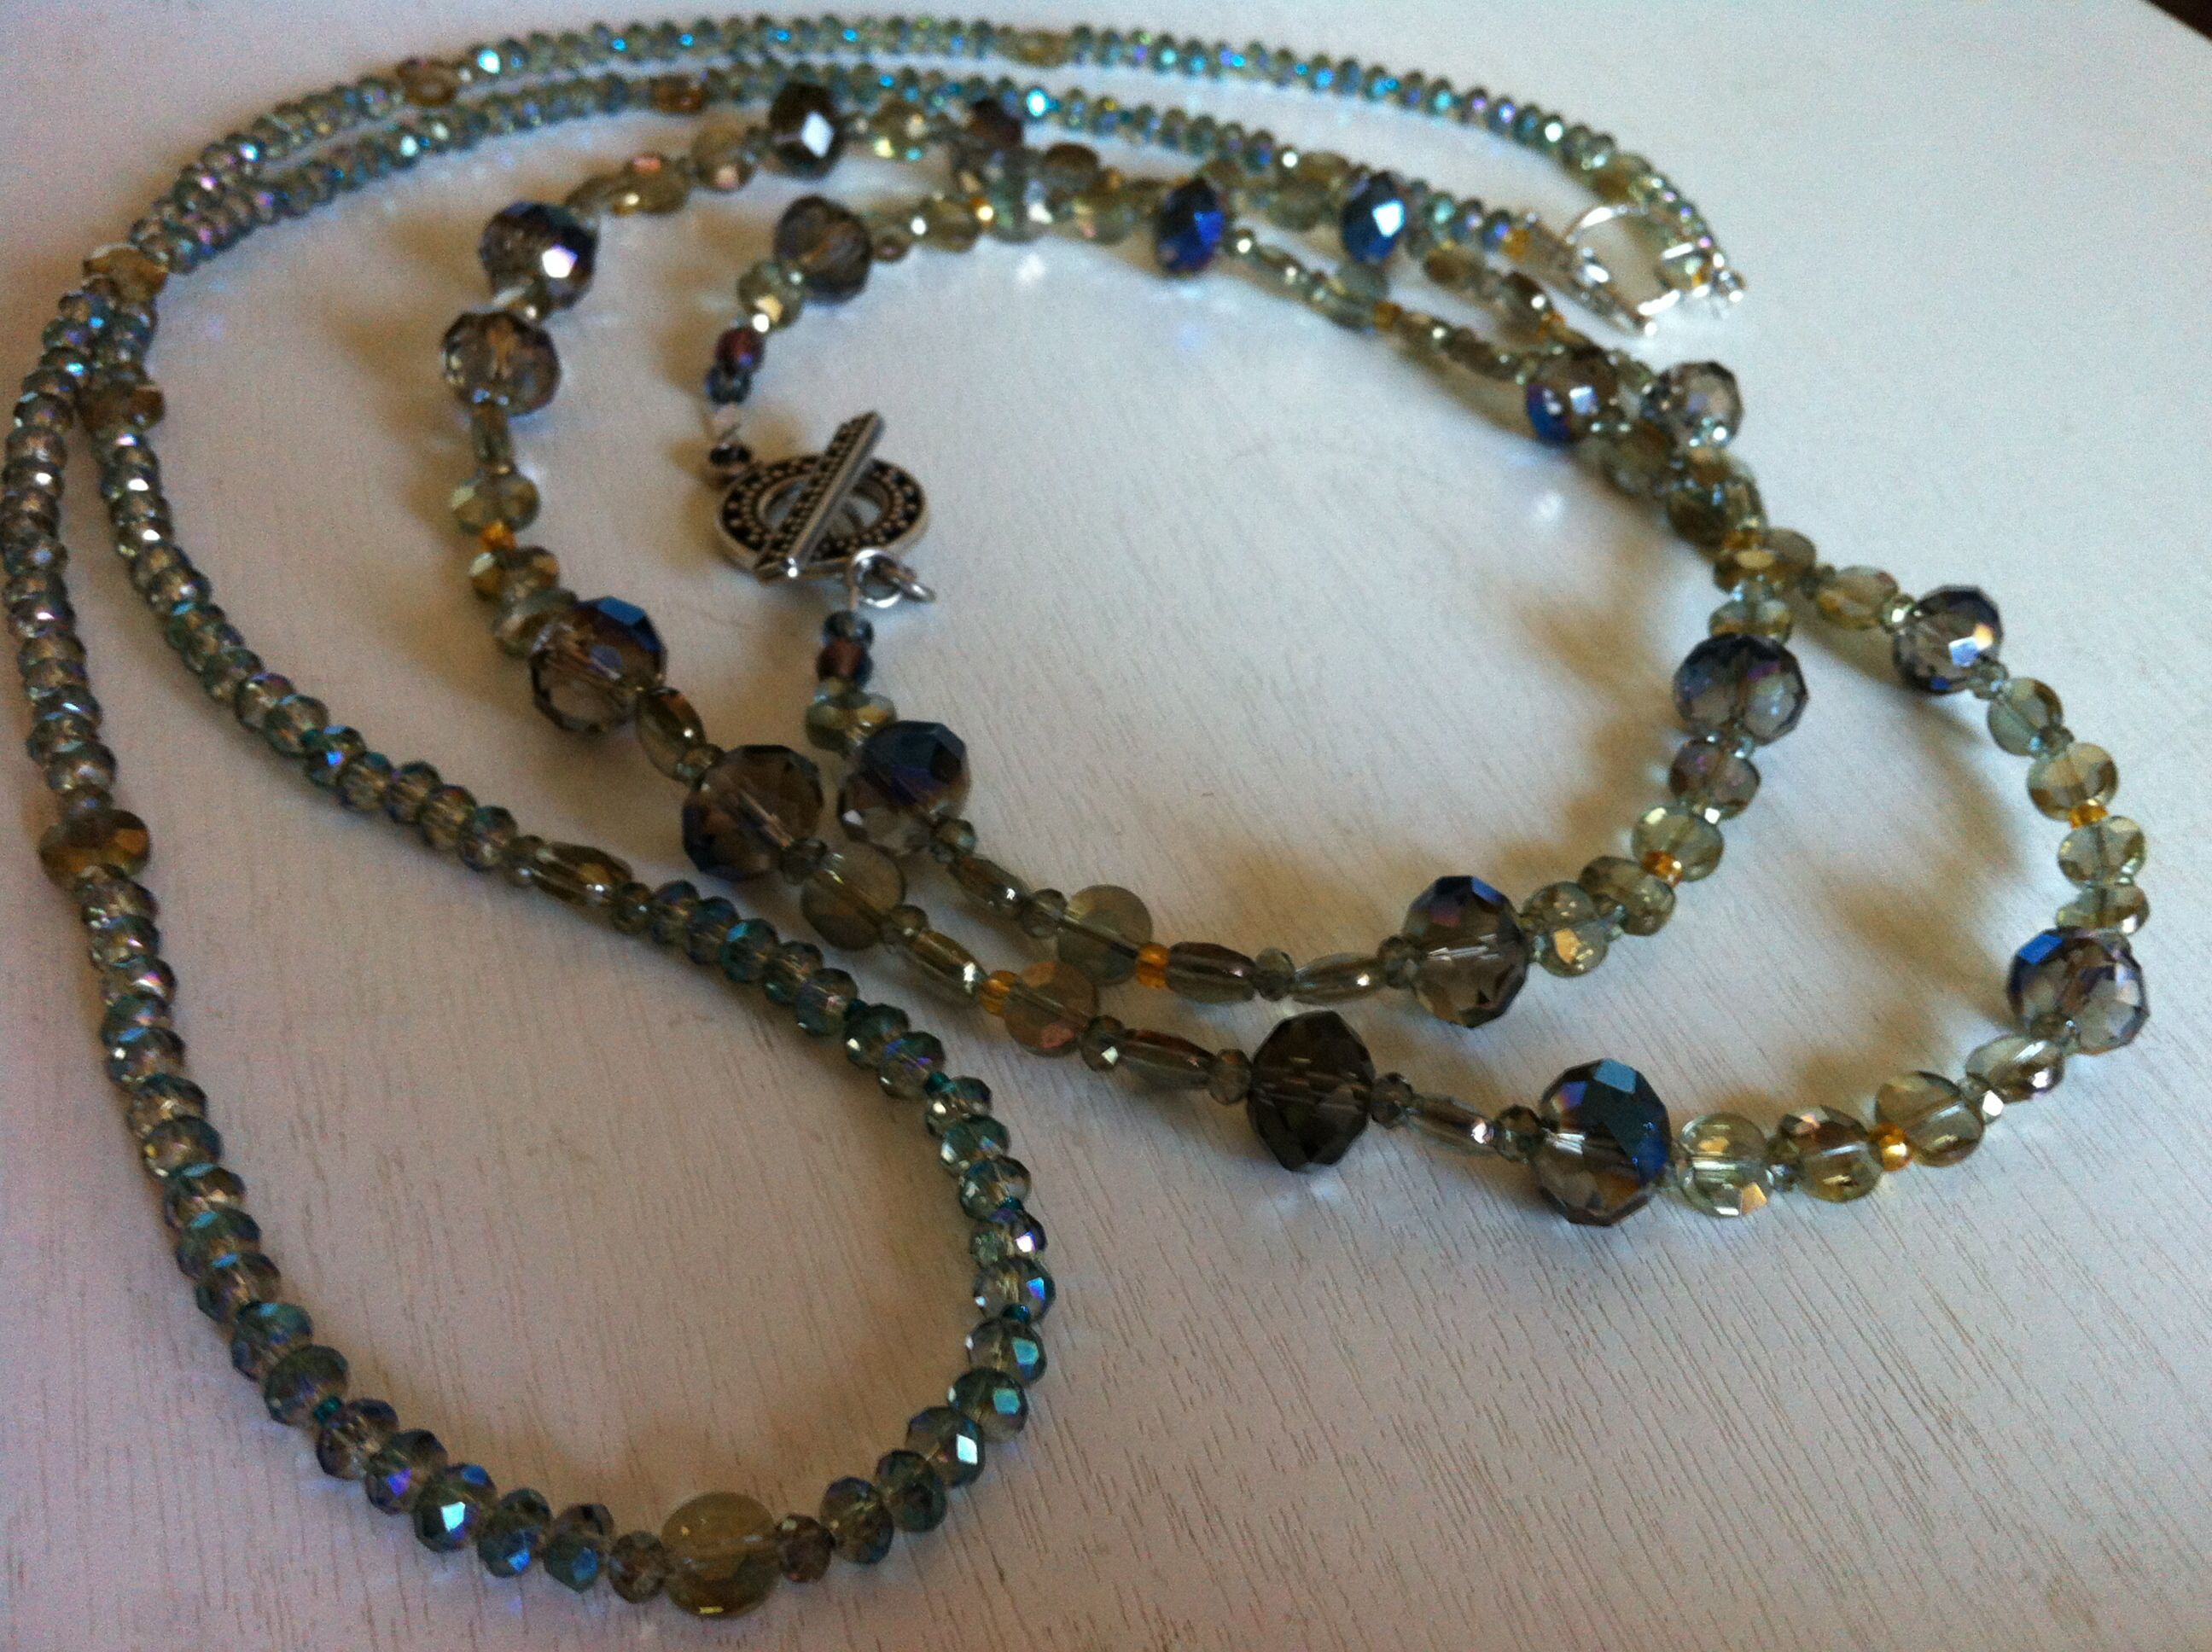 'Capricorn' & Aquarius' glass bead necklaces